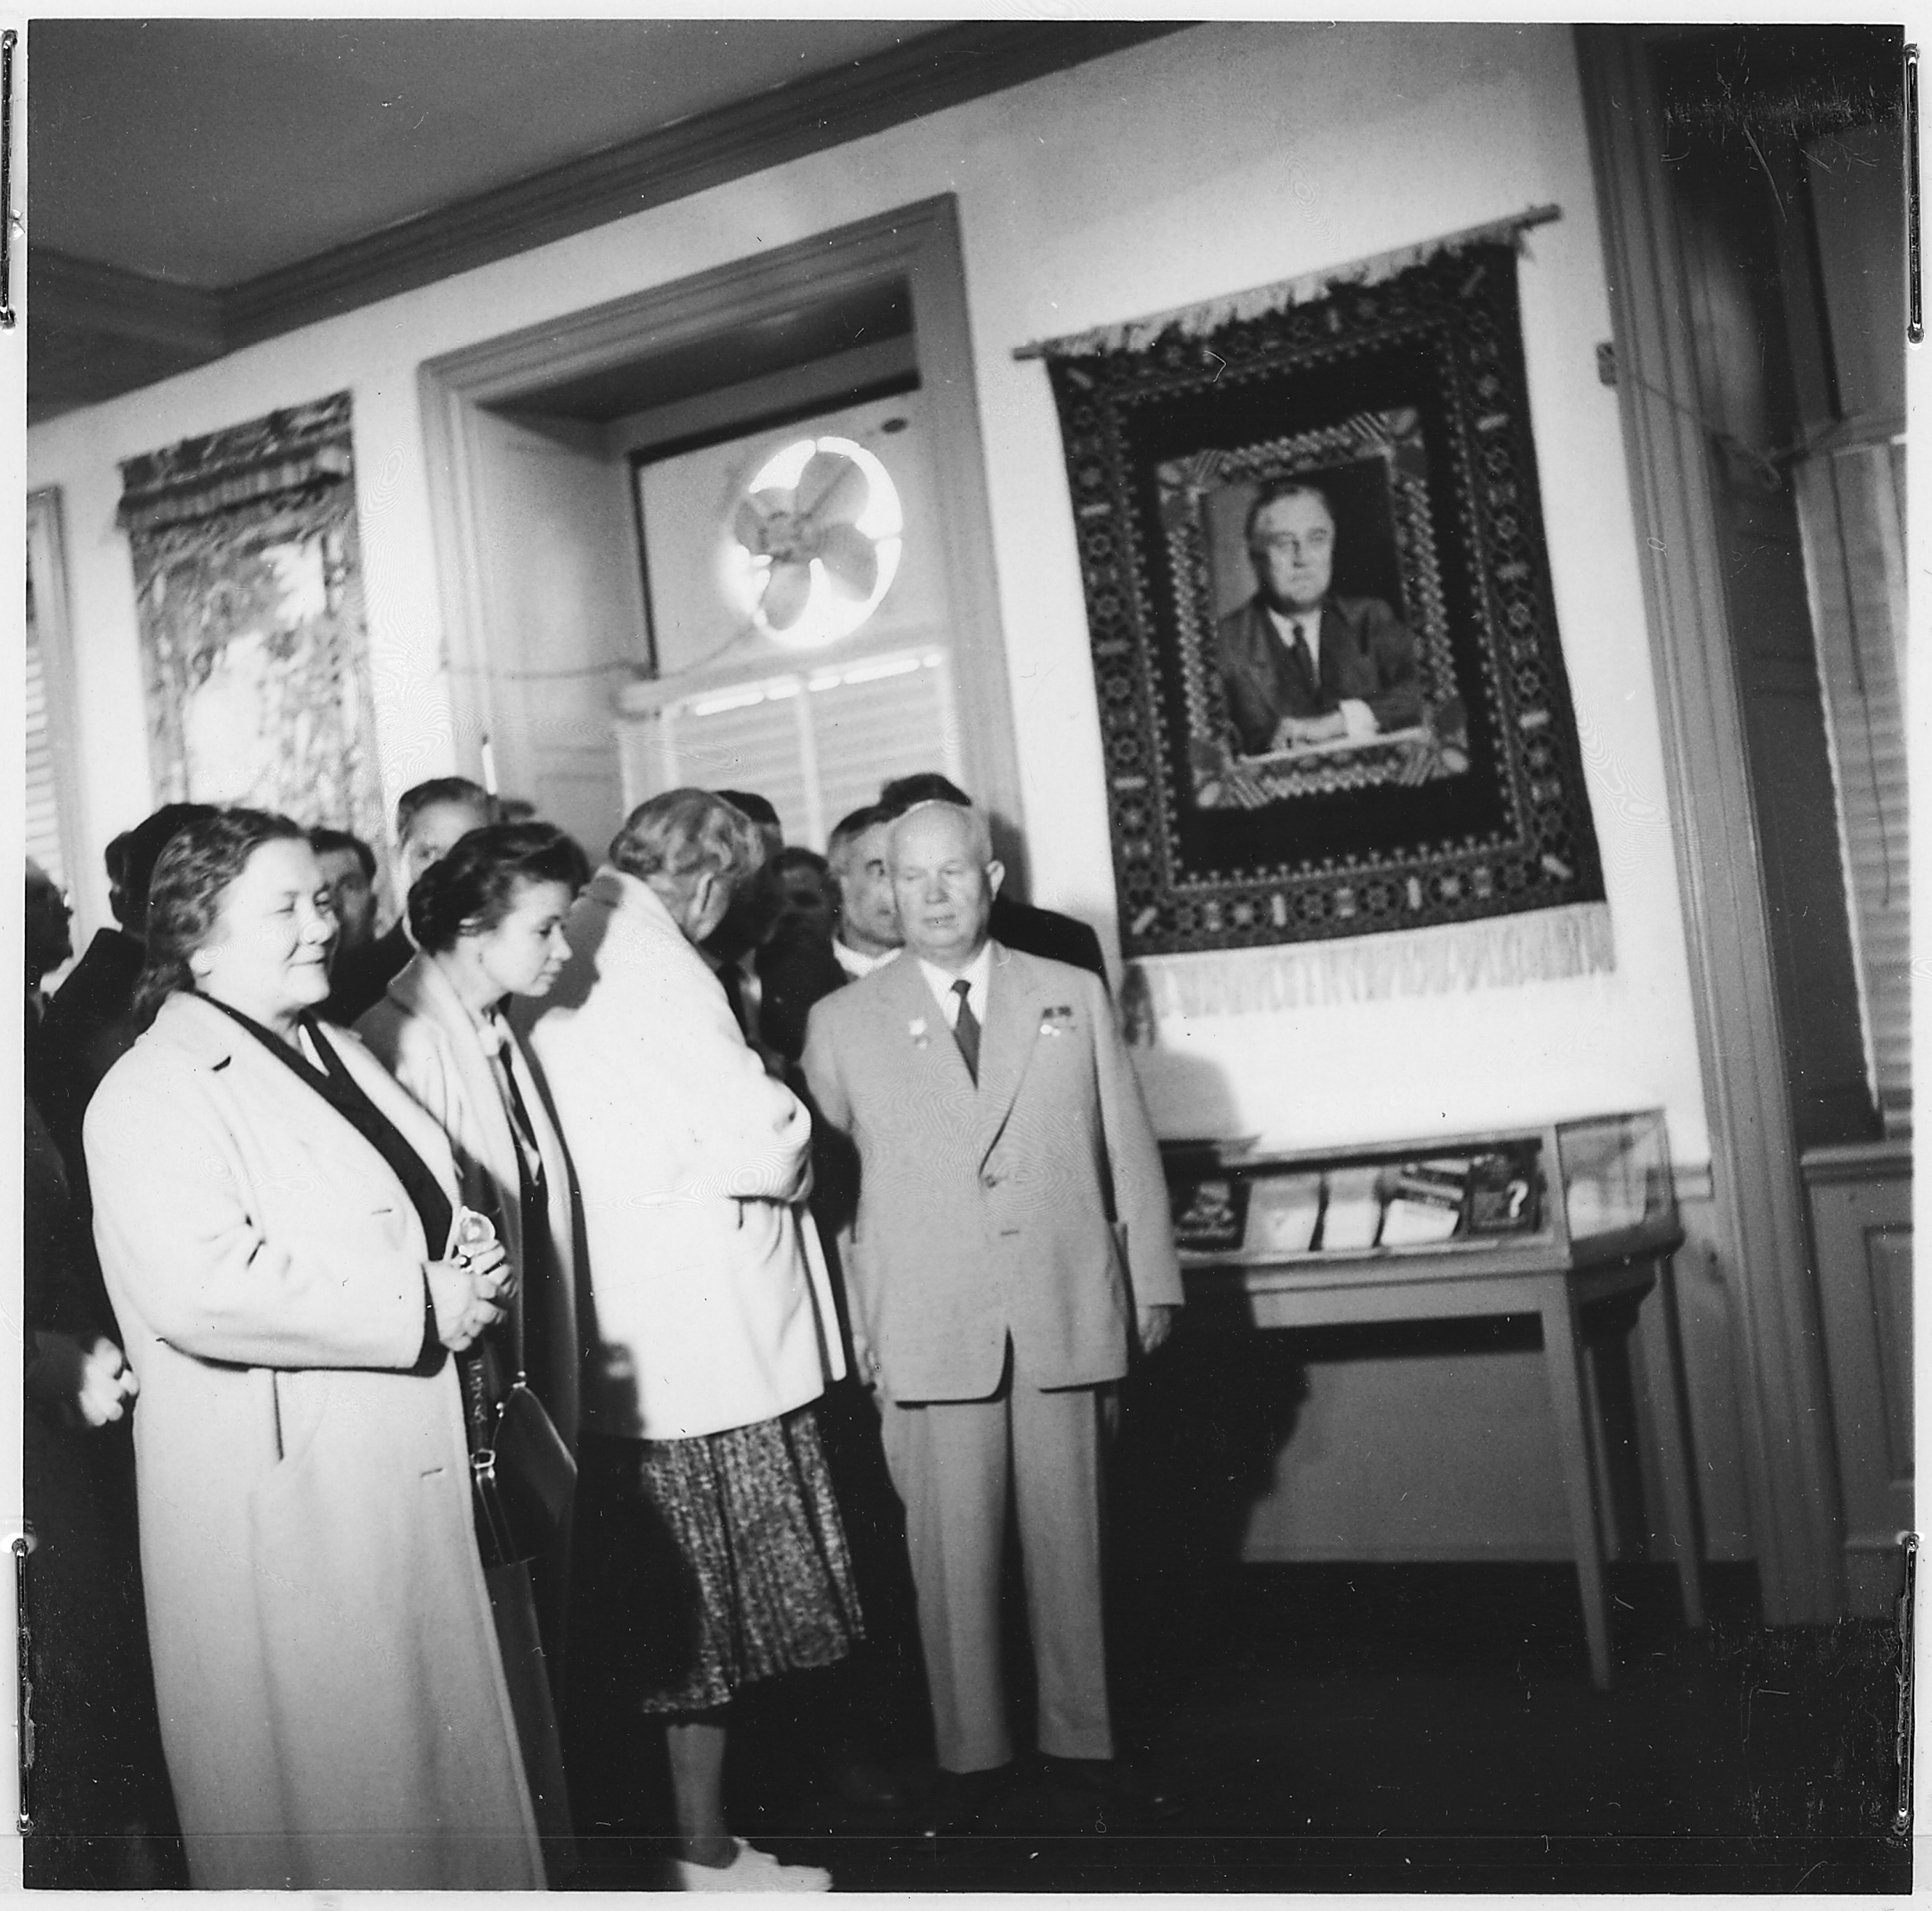 Eleanor Roosevelt gives Soviet Premier Nikita Khrushchev and his wife Nina a tour of the FDR Library, September 18, 1959